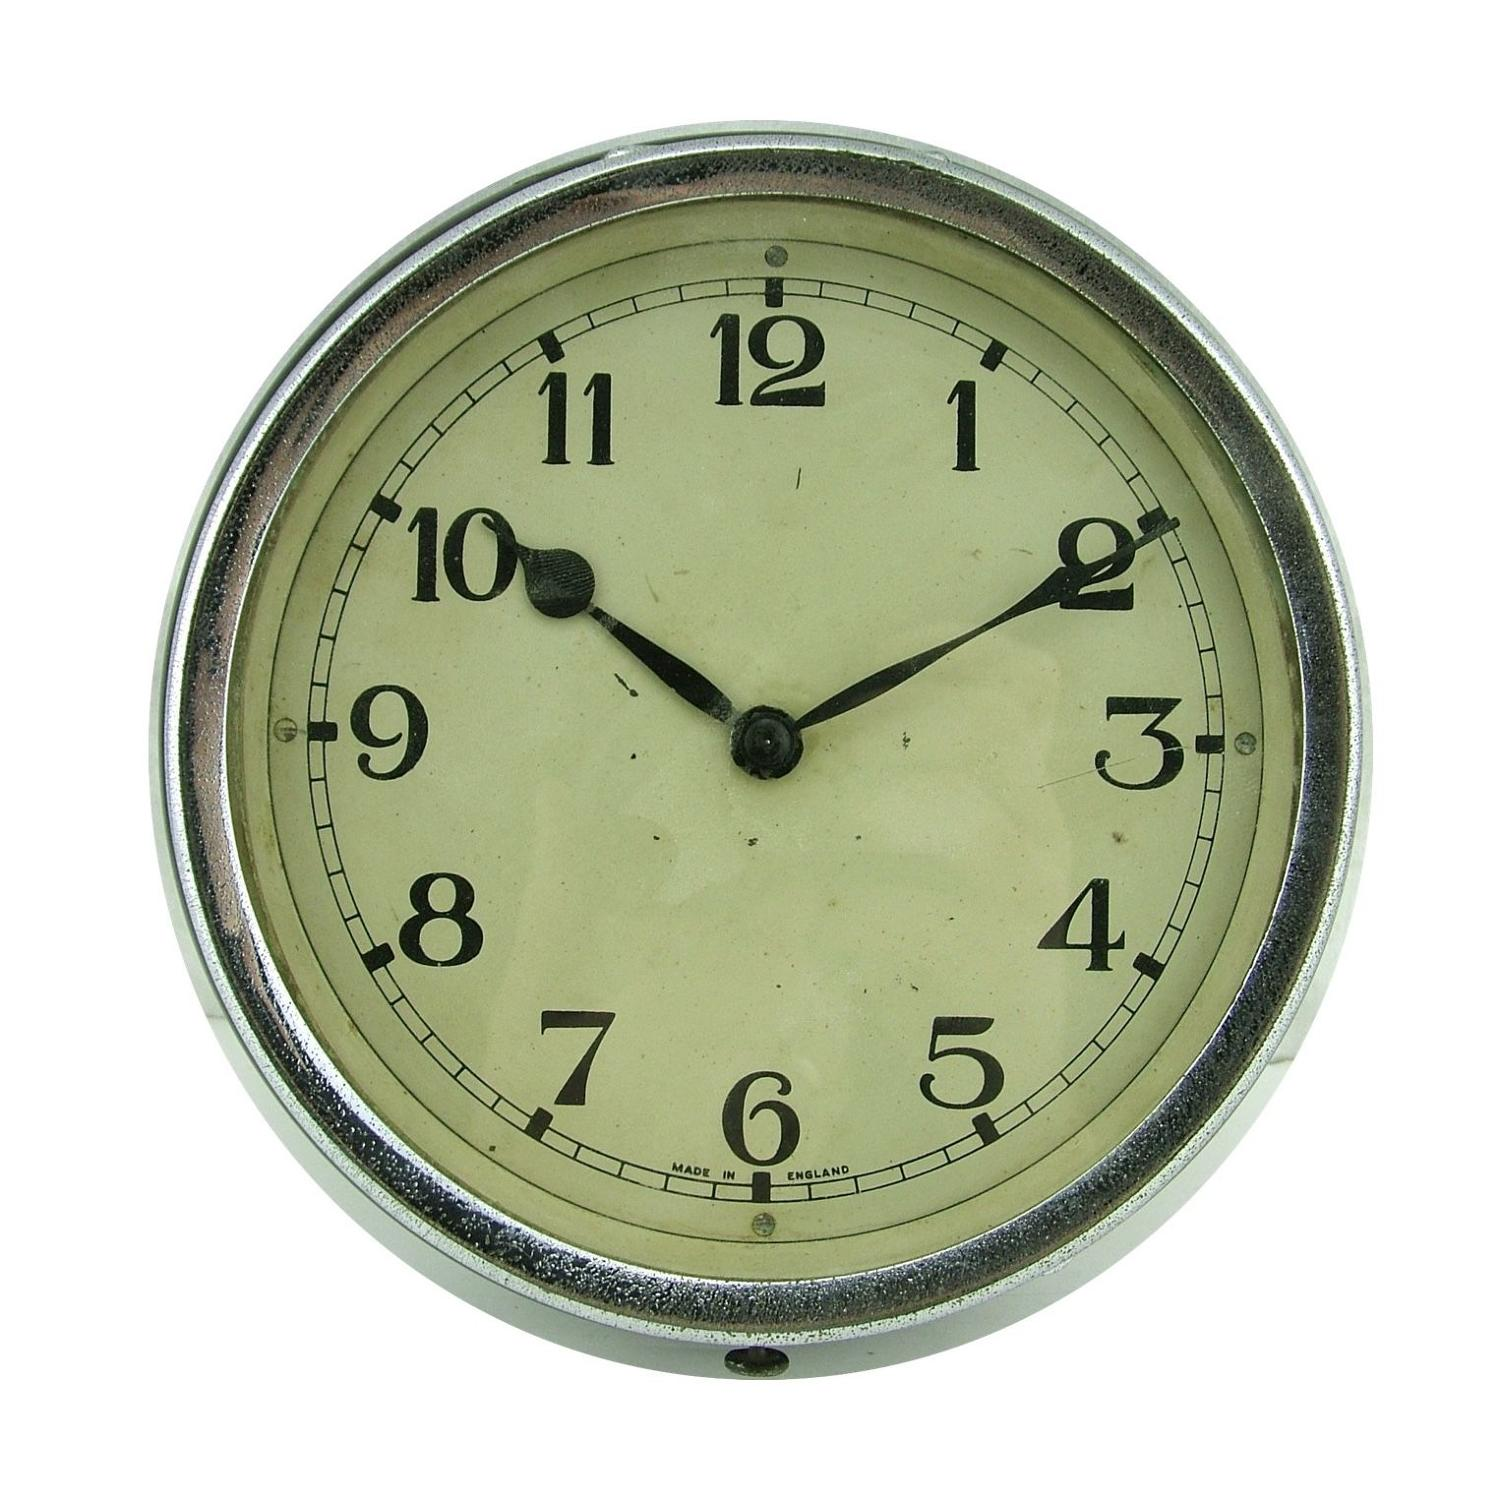 War department wall clock